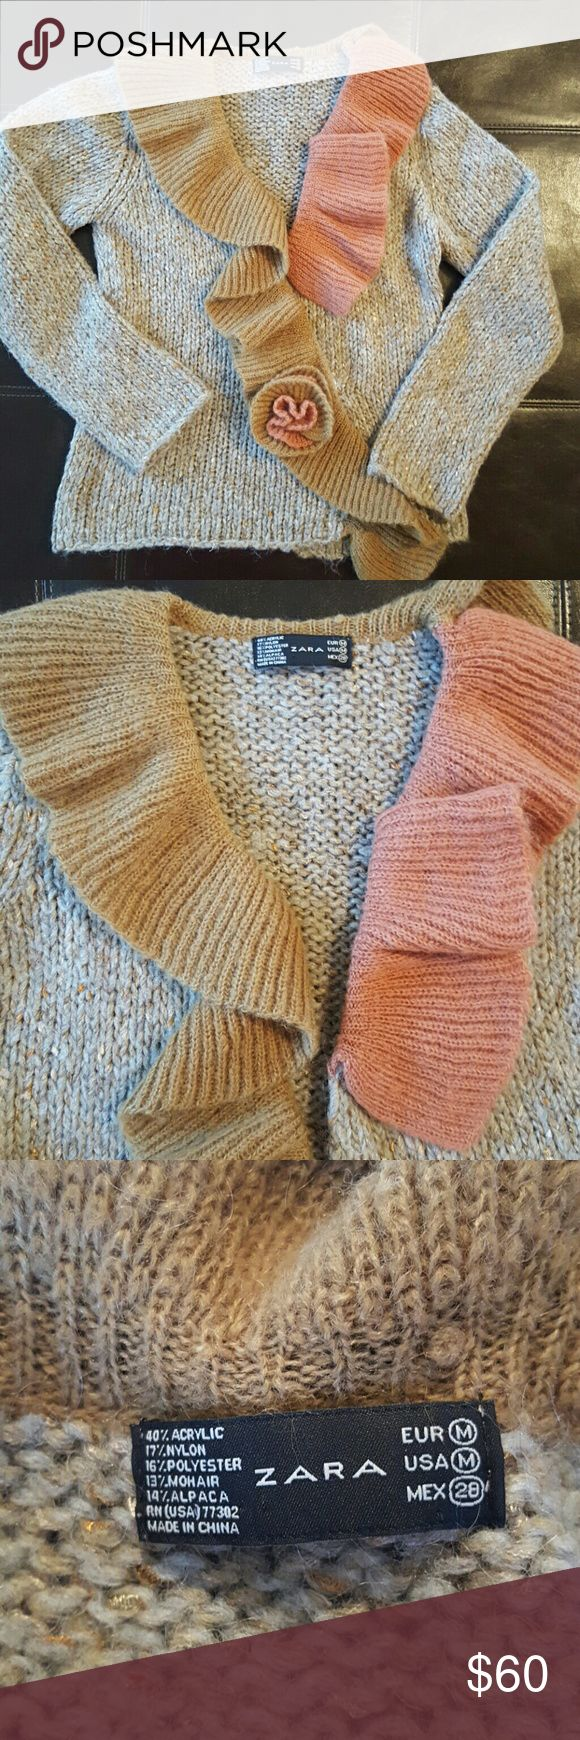 Zara cardigan❄❄ I am seling this stunning, chunky Zara cardigan / sweater.  Definitely not your ordinary sweater that you see evry day . Colors and style match perfectly, Zara did it again an outstanding job . Very worm and cozy  Absolutely great condition Zara Tops